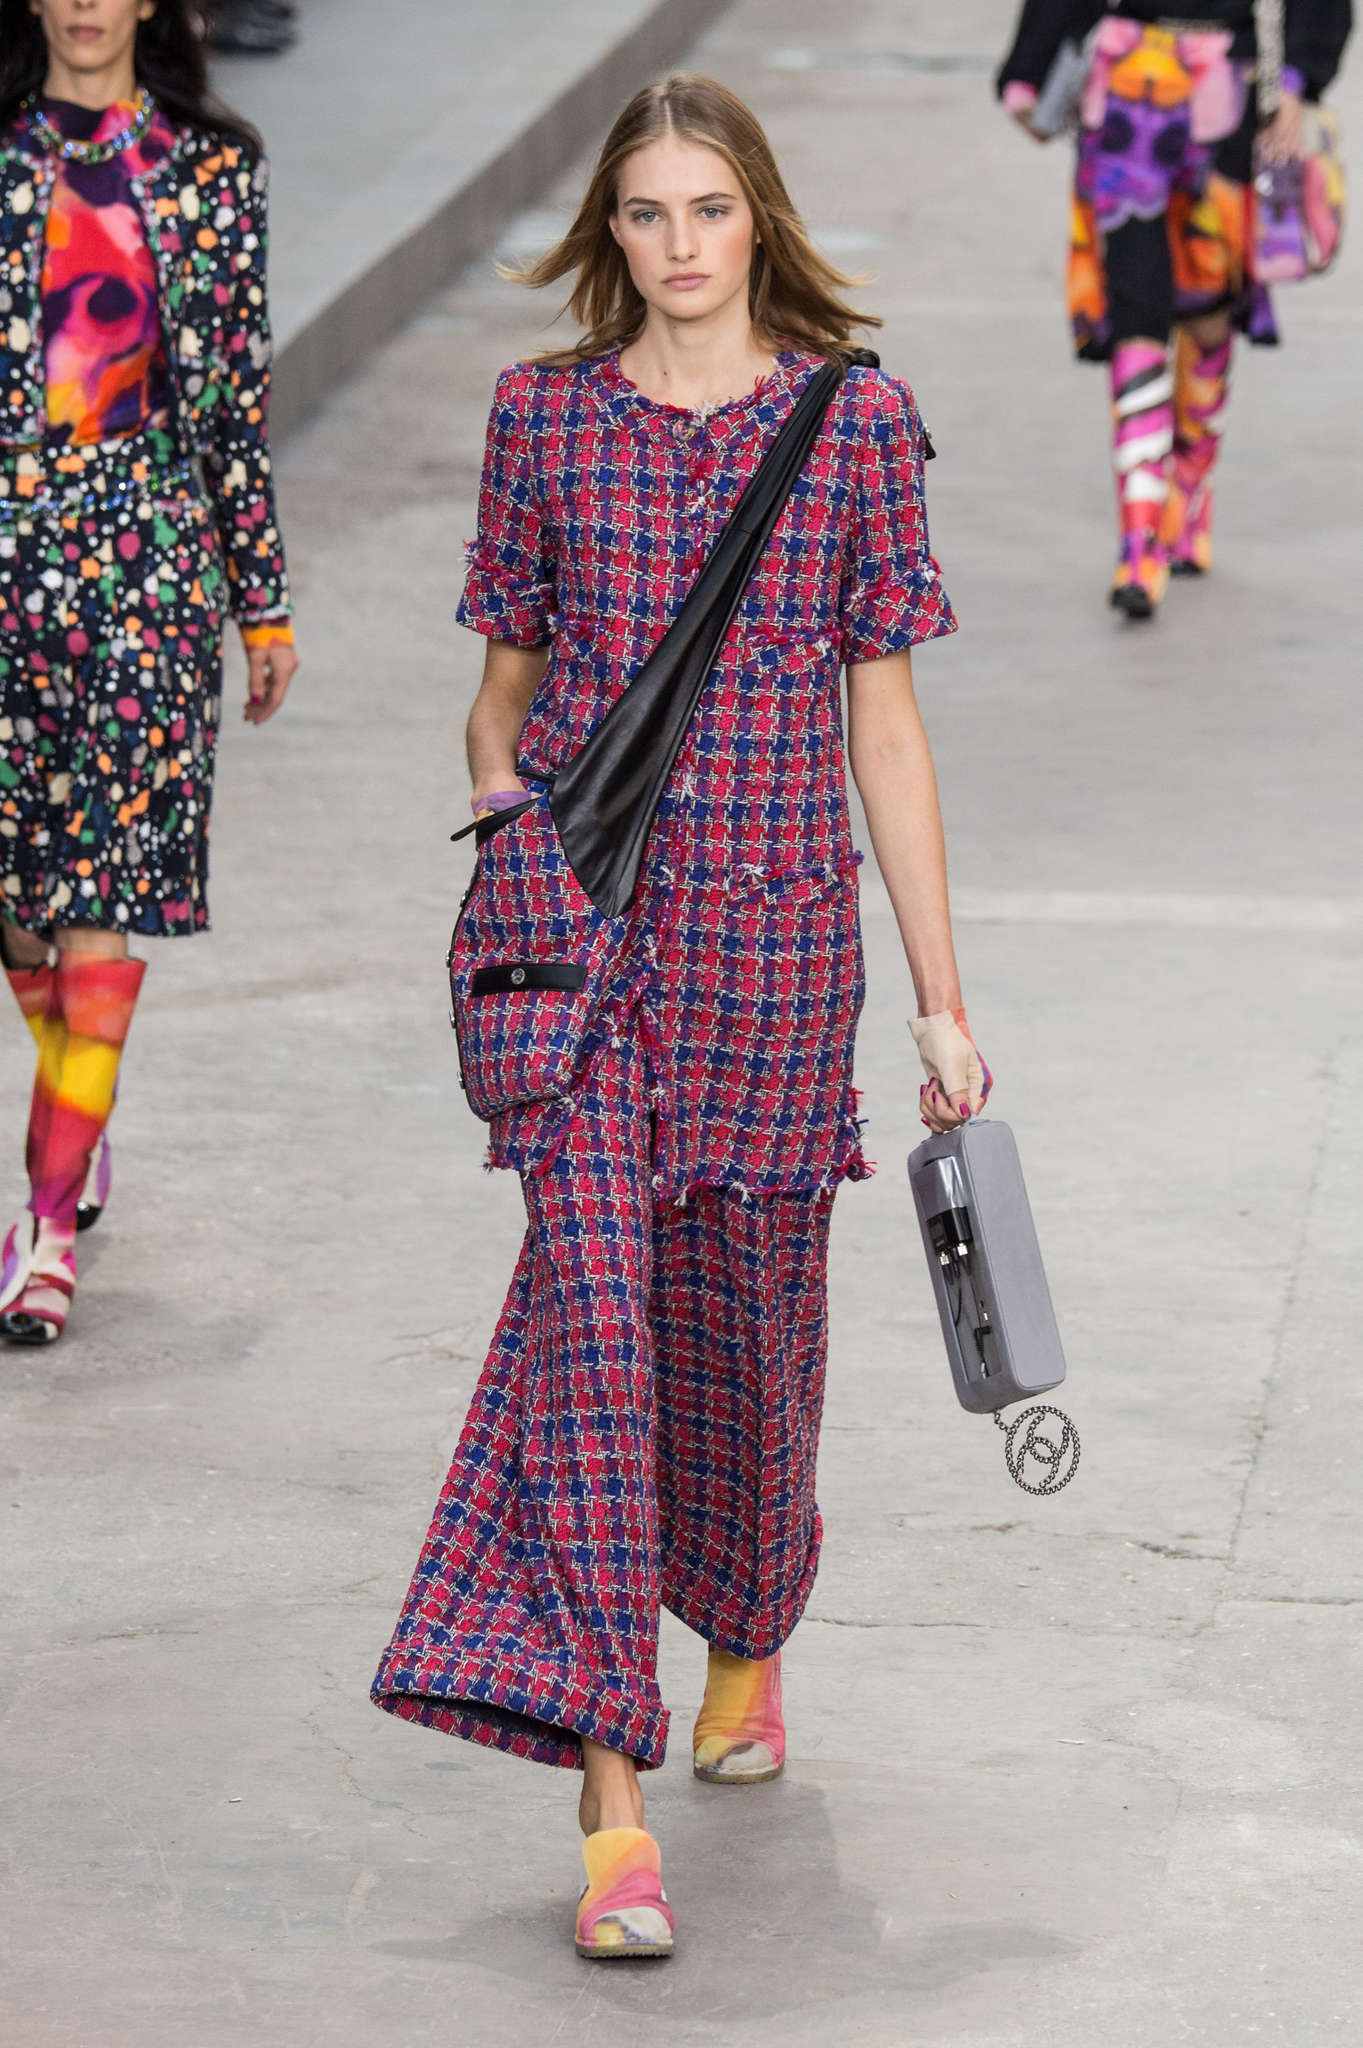 Chanel - Collection Printemps/Eté 15 on Trends Periodical